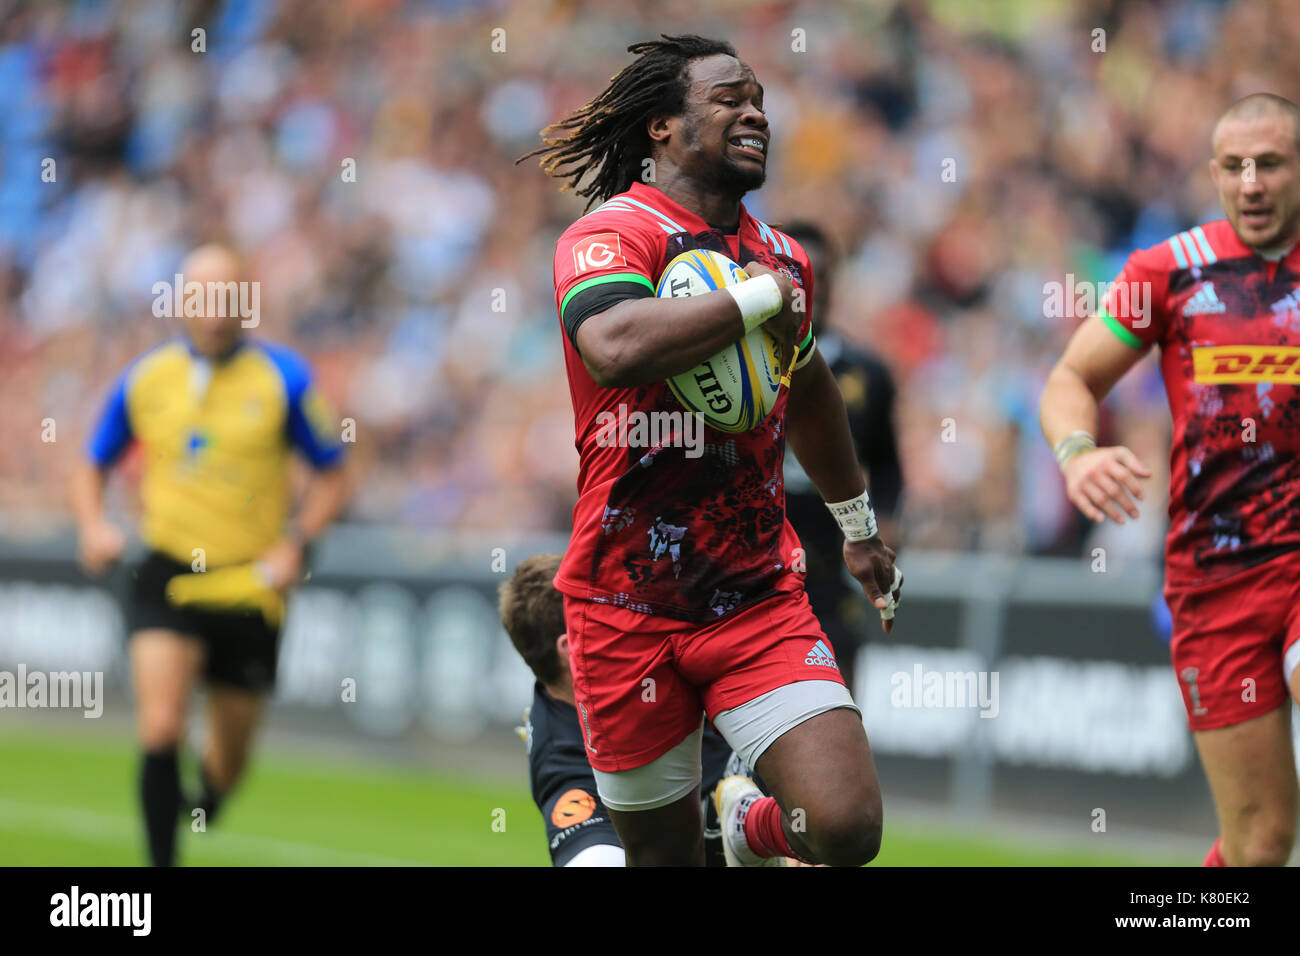 Harlequins Marland Yarde score TRY for wasps during the Aviva Premiership Rugby match between Wasps RFC v Harlequins F.C on Sunday 17th September 2017 - Stock Image